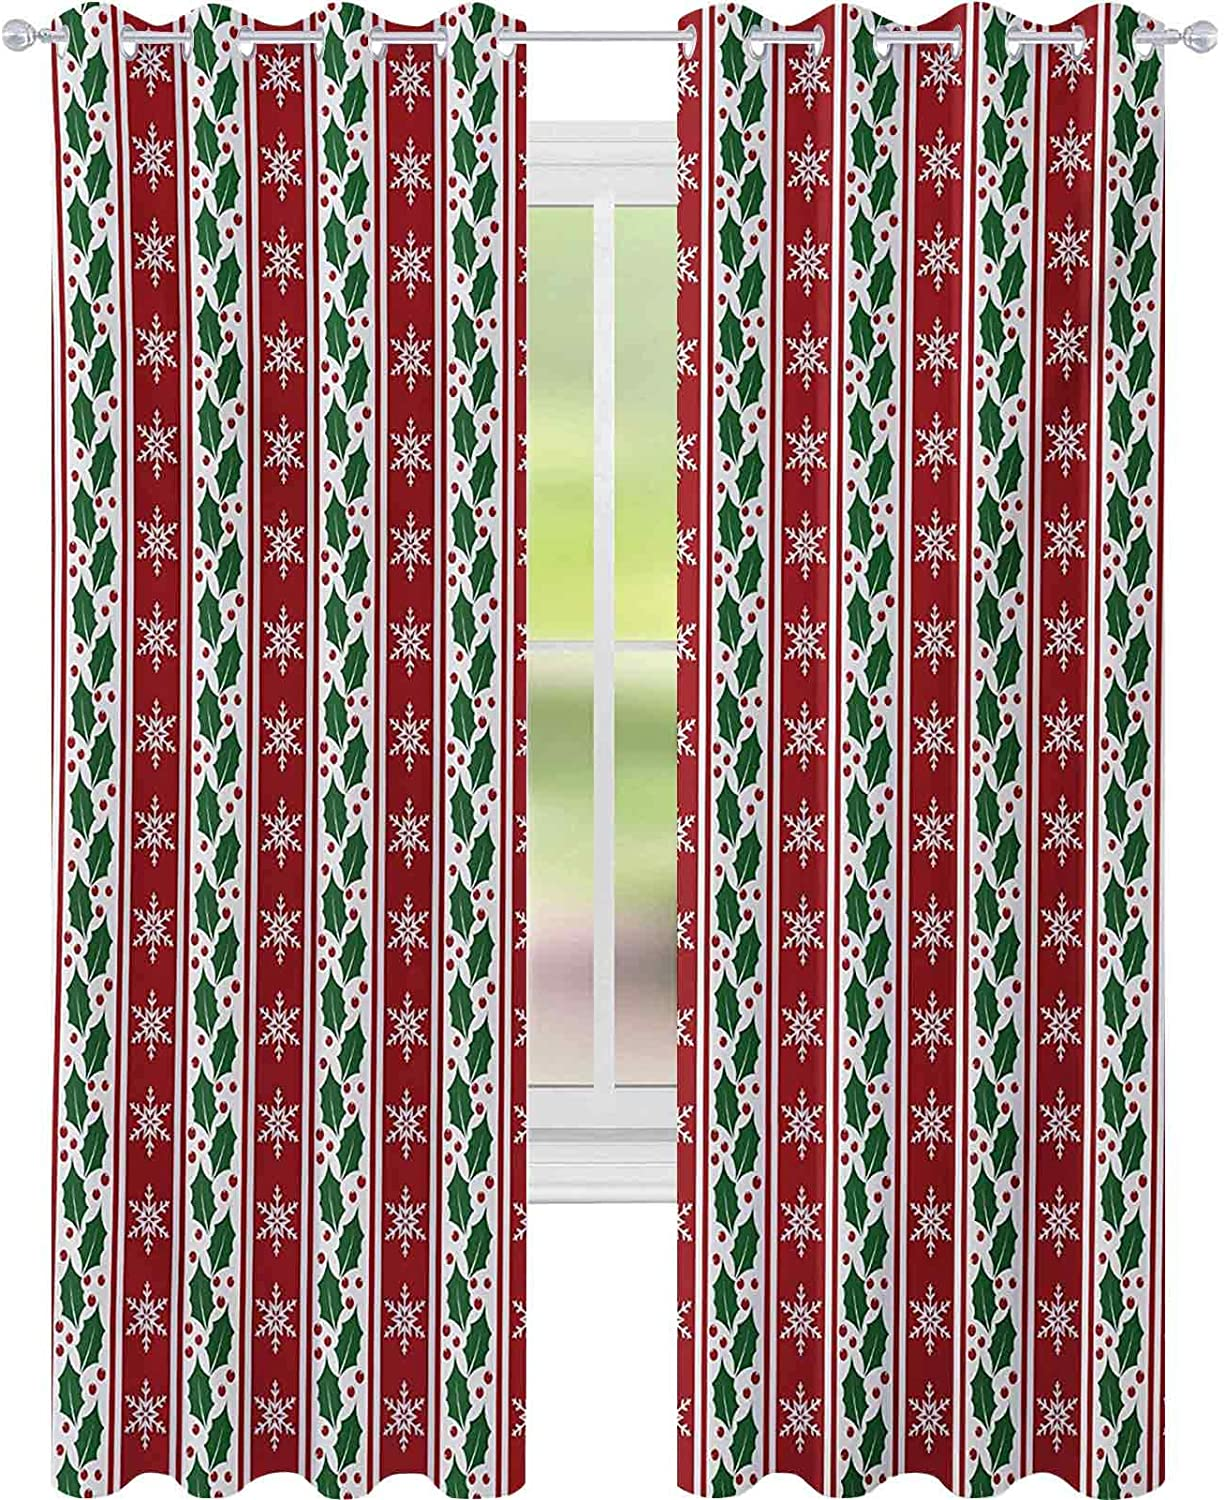 WINDOW CURTAINS HOLLY BERRY LEAVES AND SNOWFLAKES ON VERTICAL BANNERS CHRISTMAS AND NEW YEAR W52 X L84 CURTAINS FOR BABY NURSERY ROOM RUBY FERN GREEN